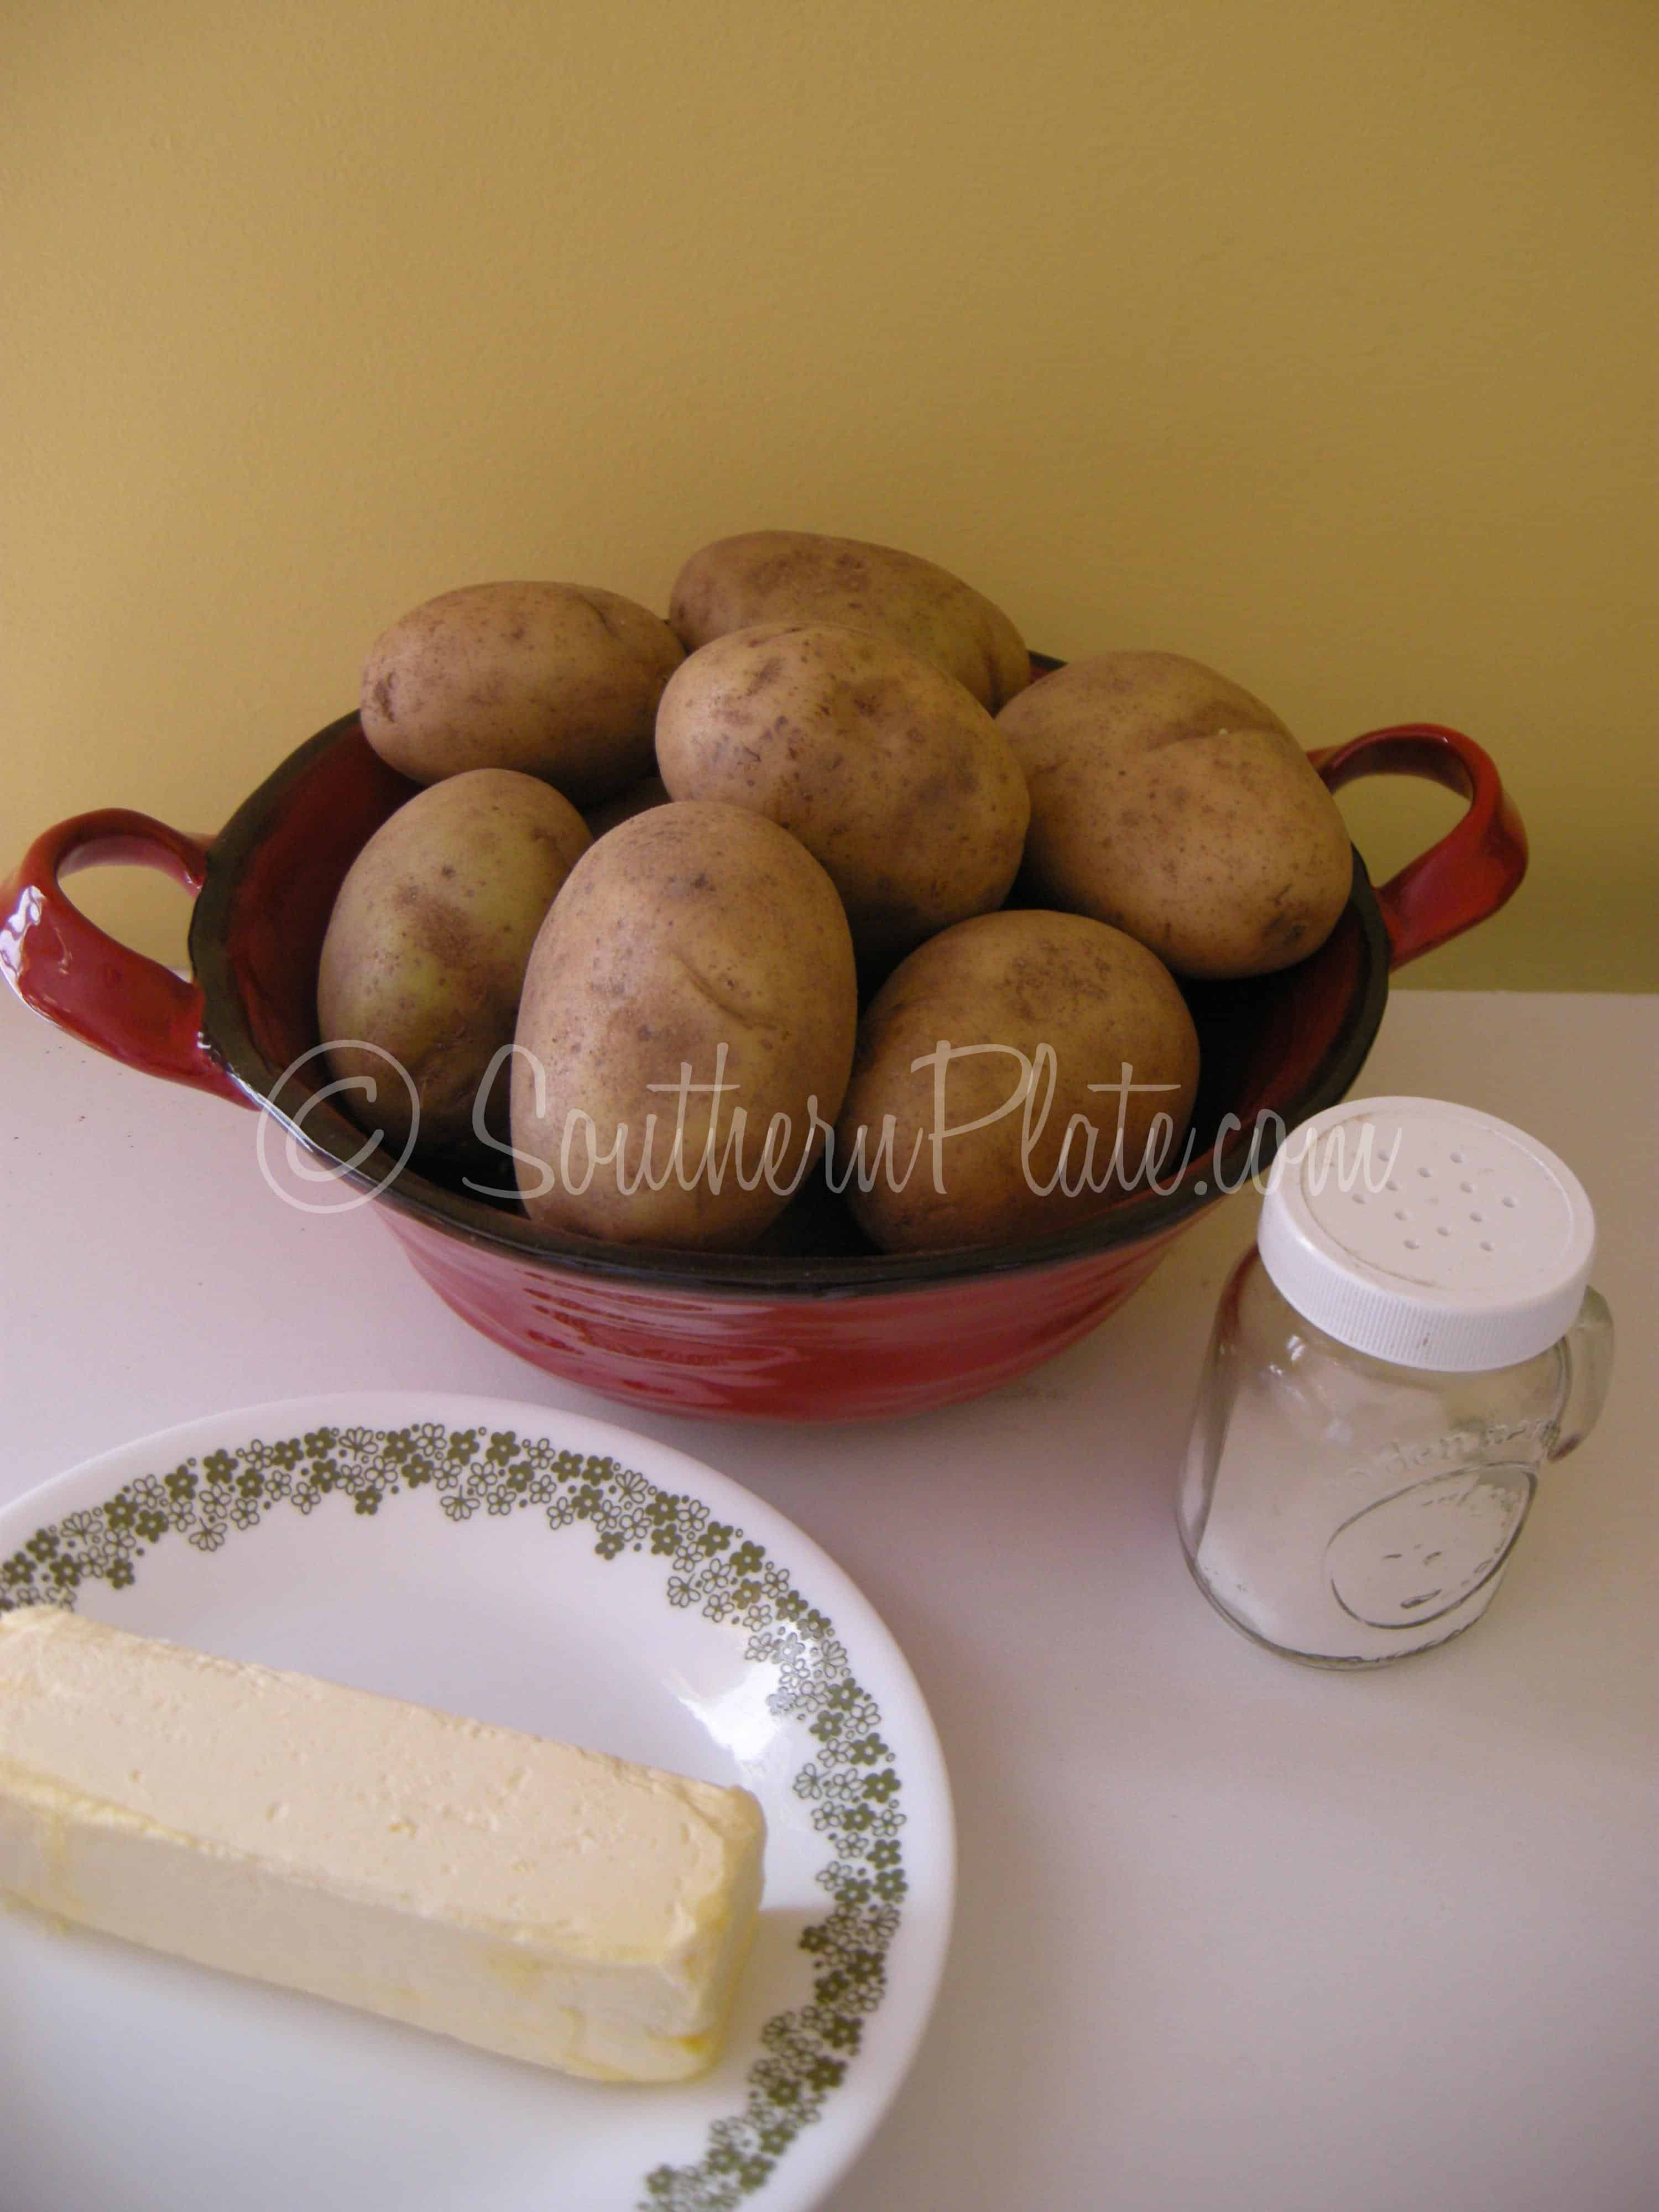 Tell me how to cook stewed potatoes With carrots and onions. Without meat